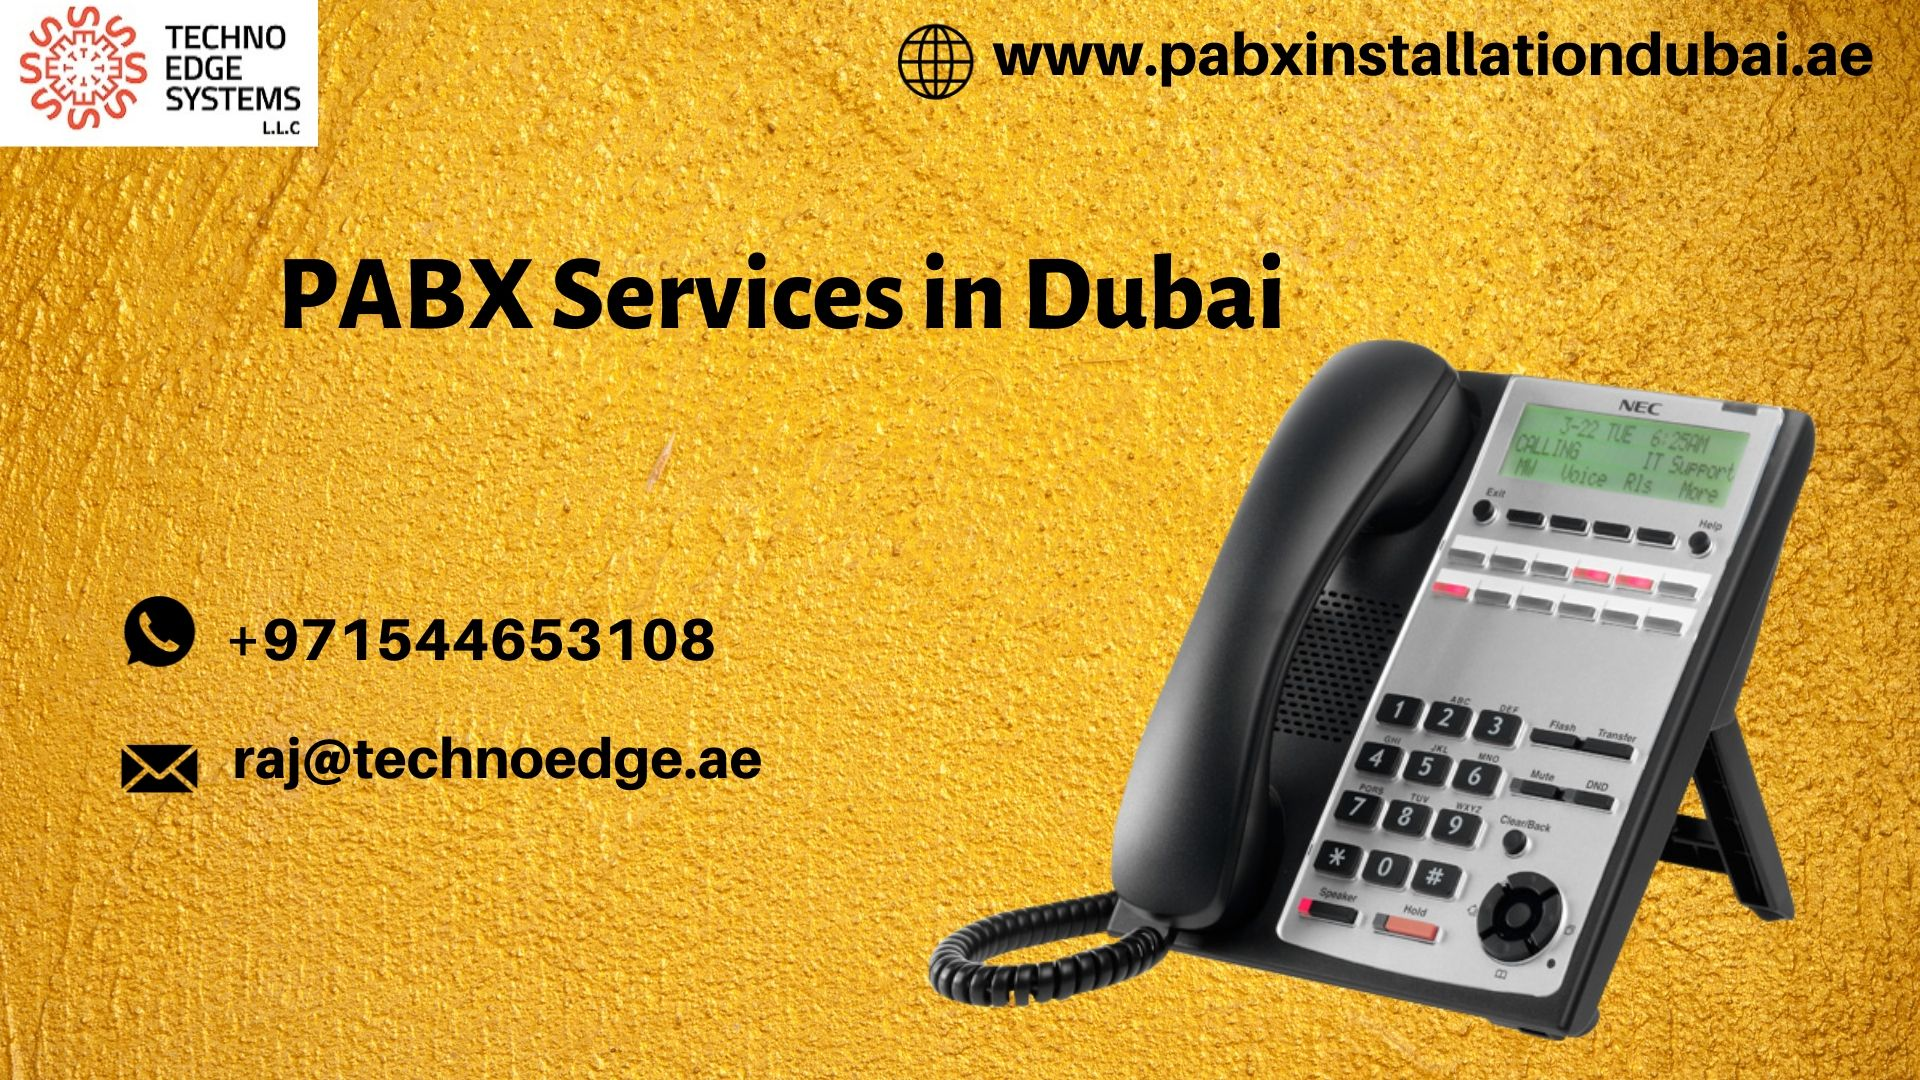 PABX services in Dubai (2).jpg